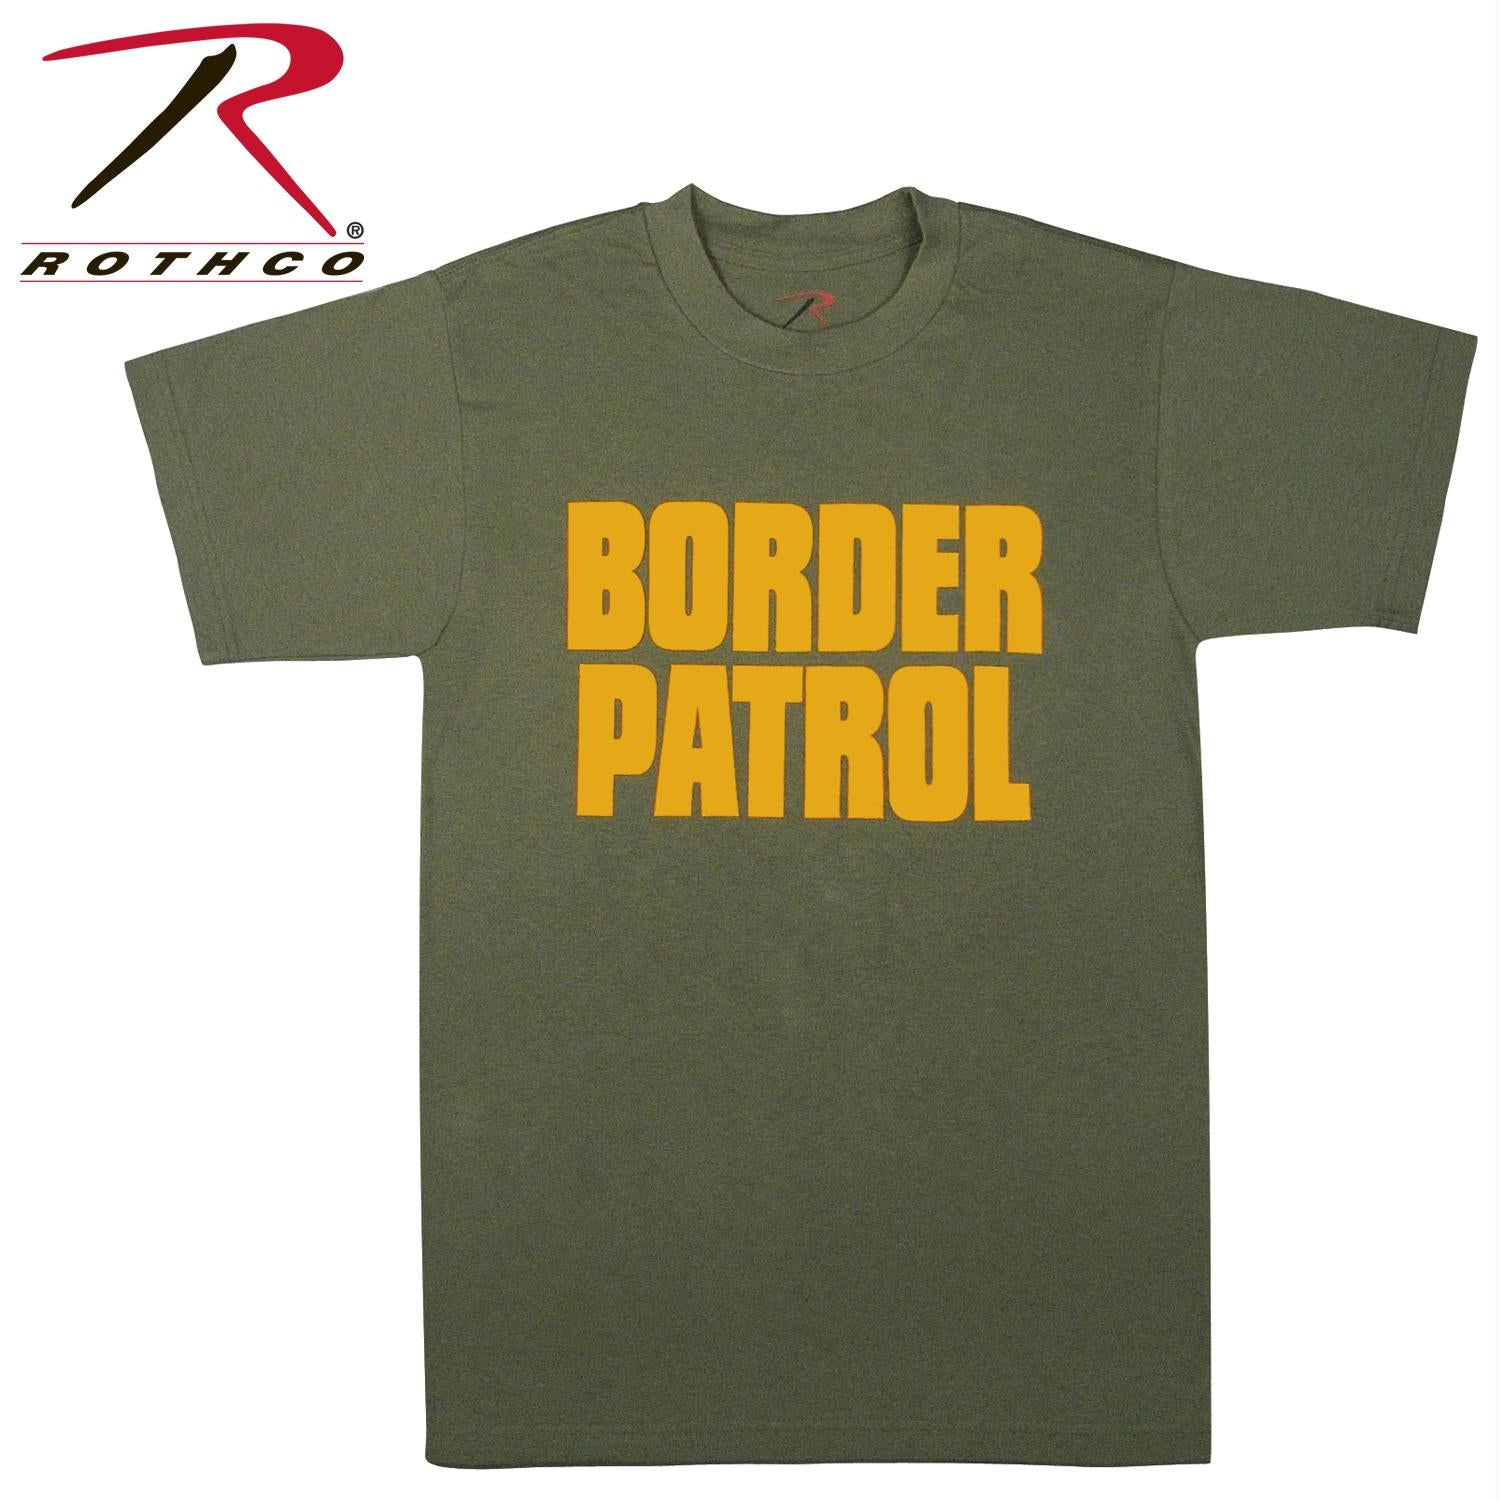 Rothco 2-Sided Border Patrol T-Shirt